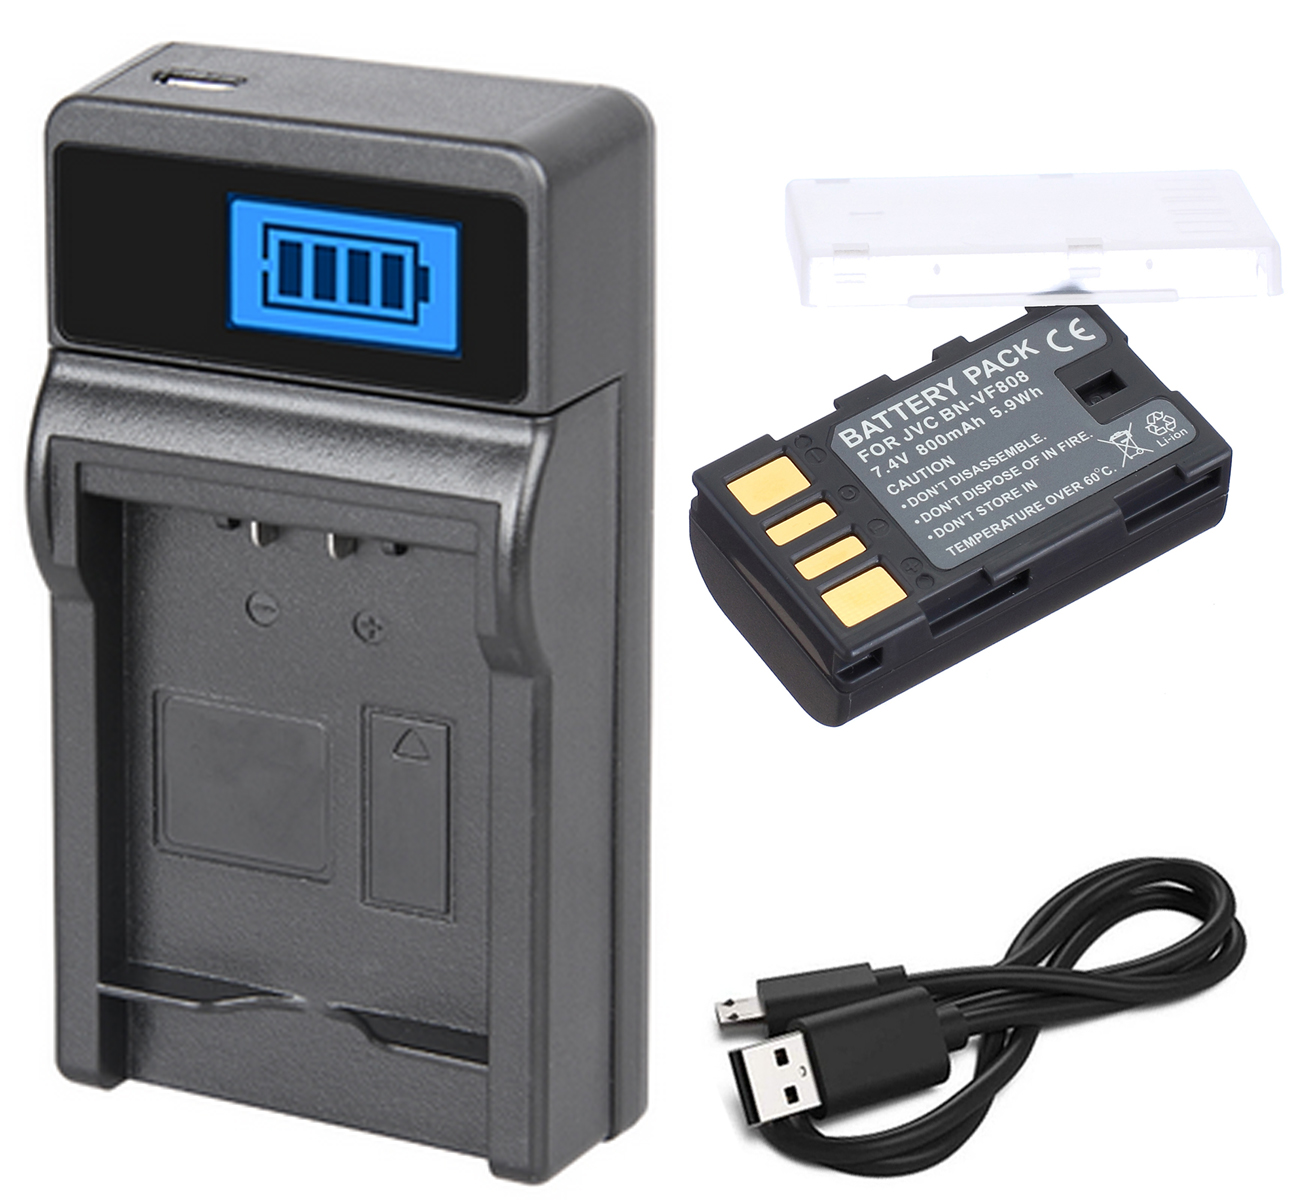 LCD Quick Battery Charger for JVC Everio GZ-MG130U GZ-MG360U Camcorder GZ-MG330U GZ-MG230U